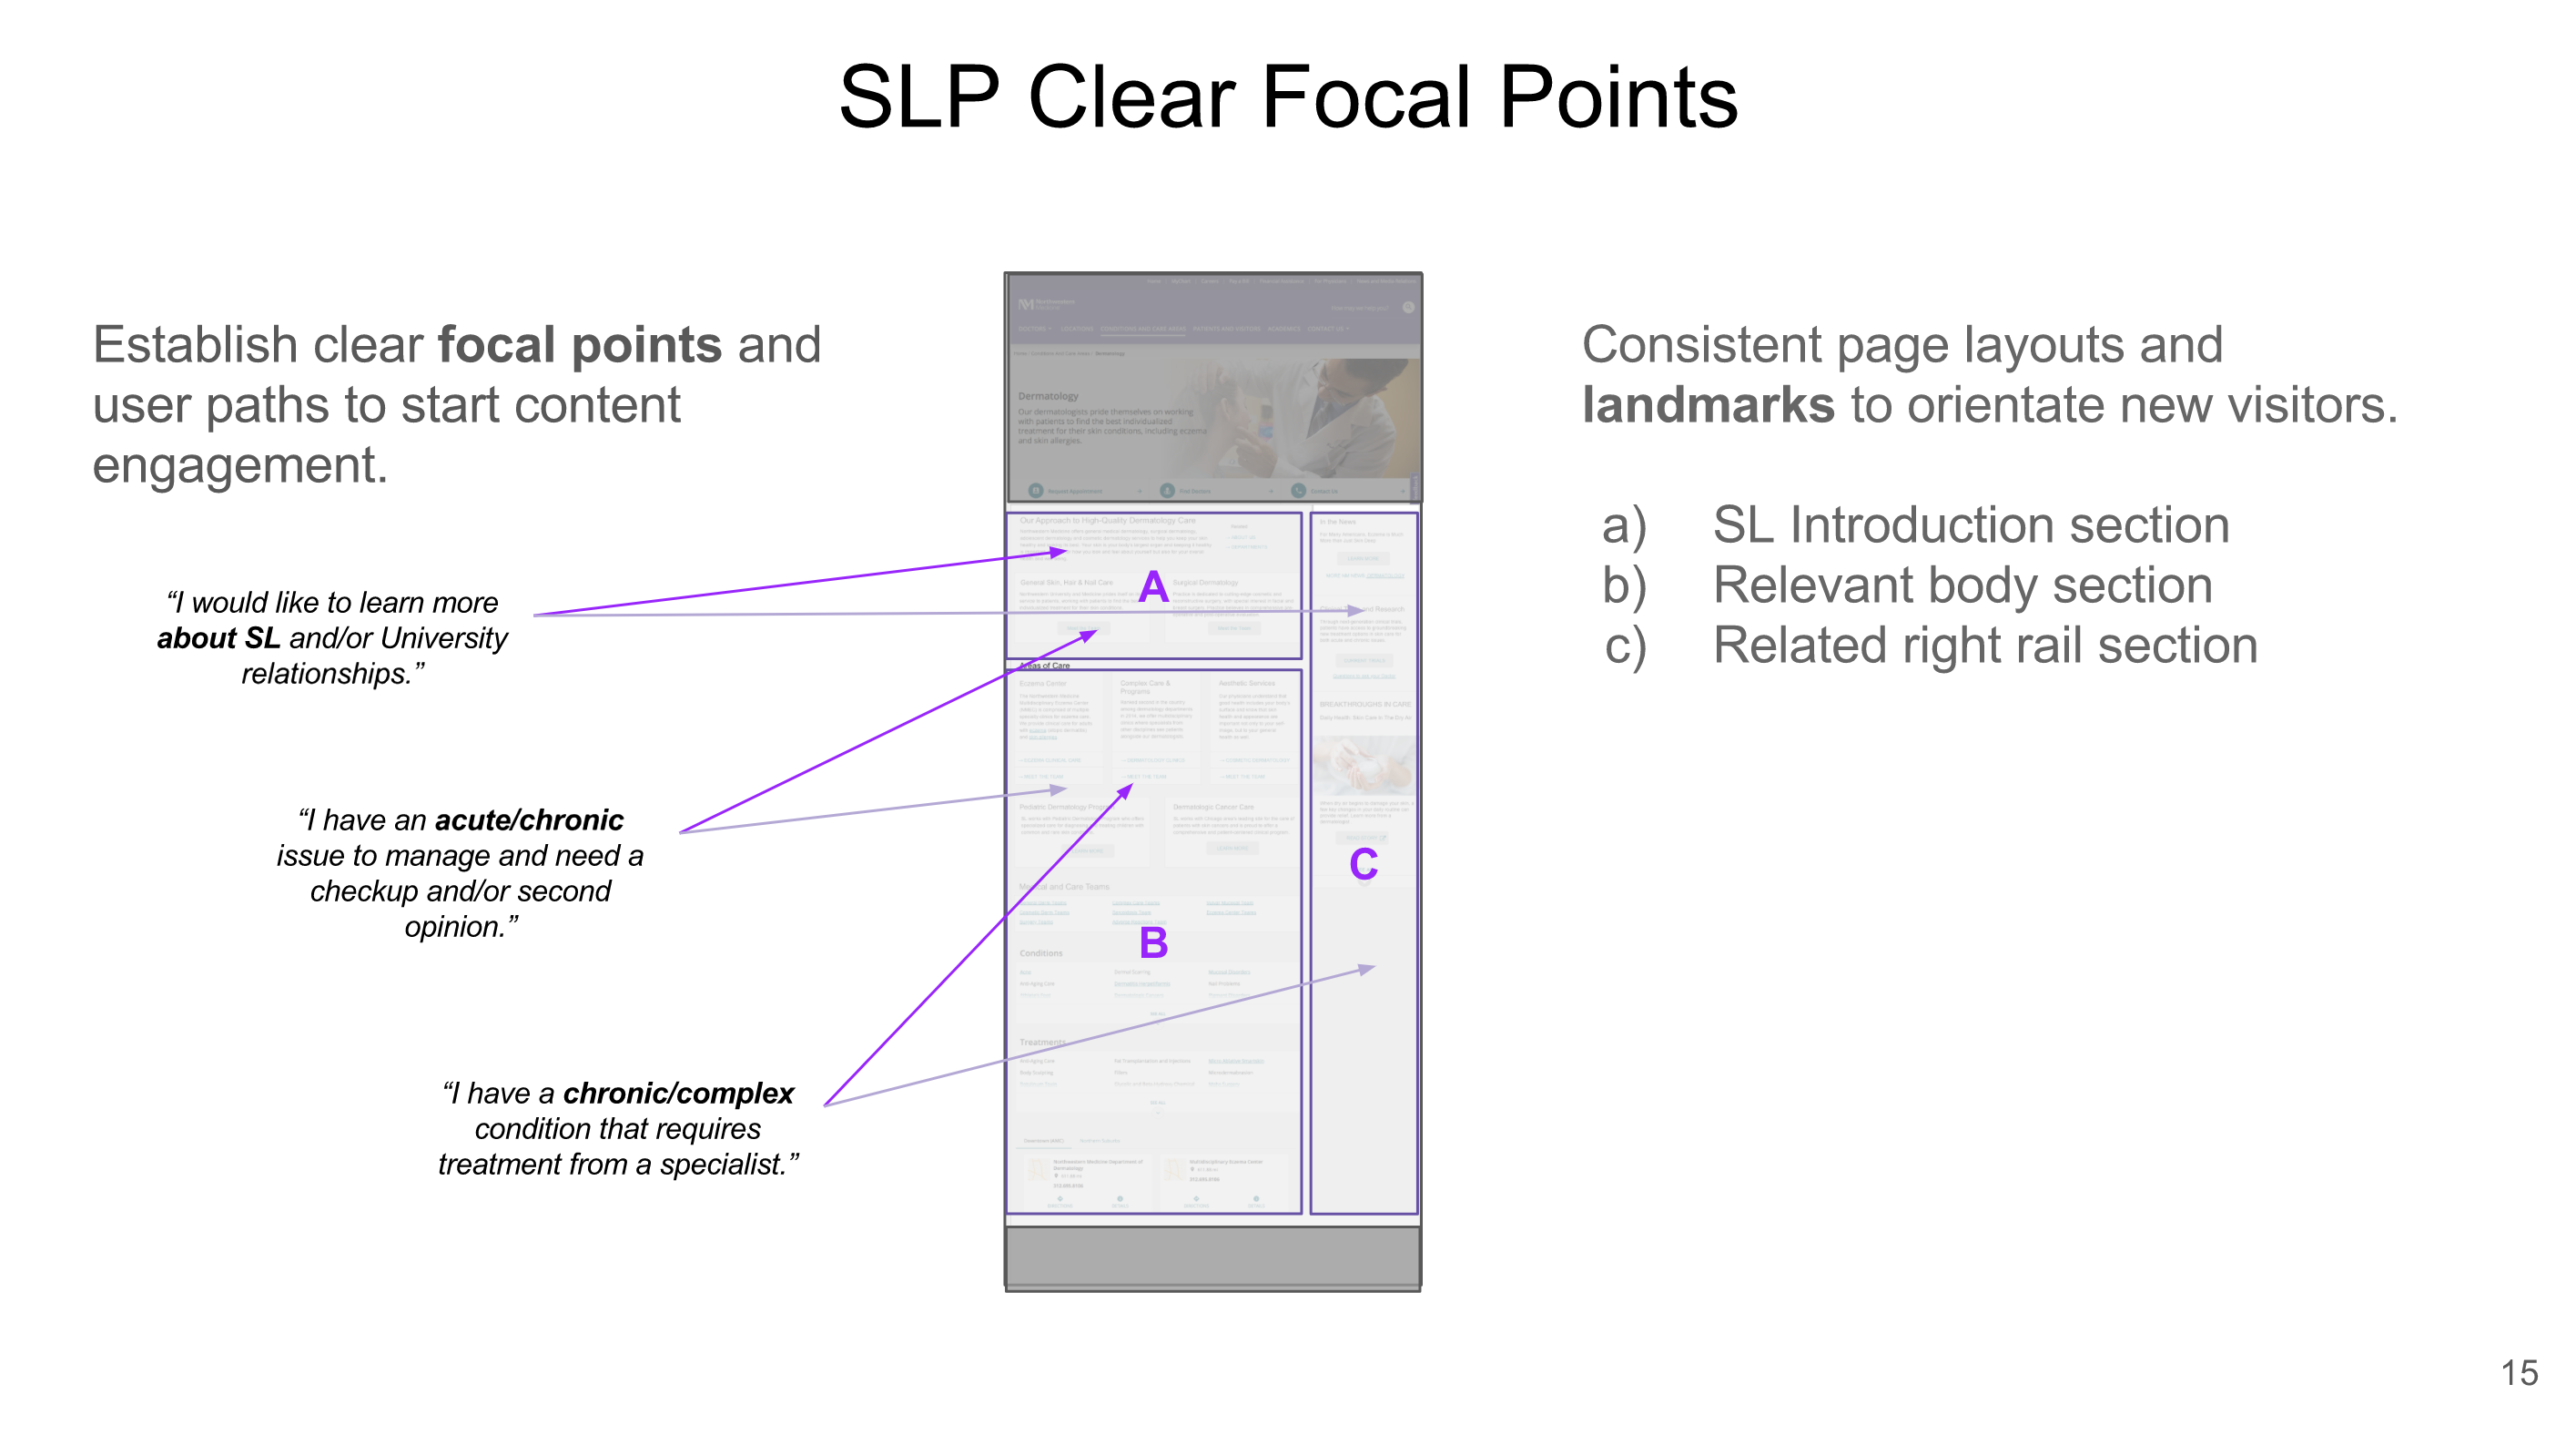 Frameworks help identify user focal points and helps prioritize page content.